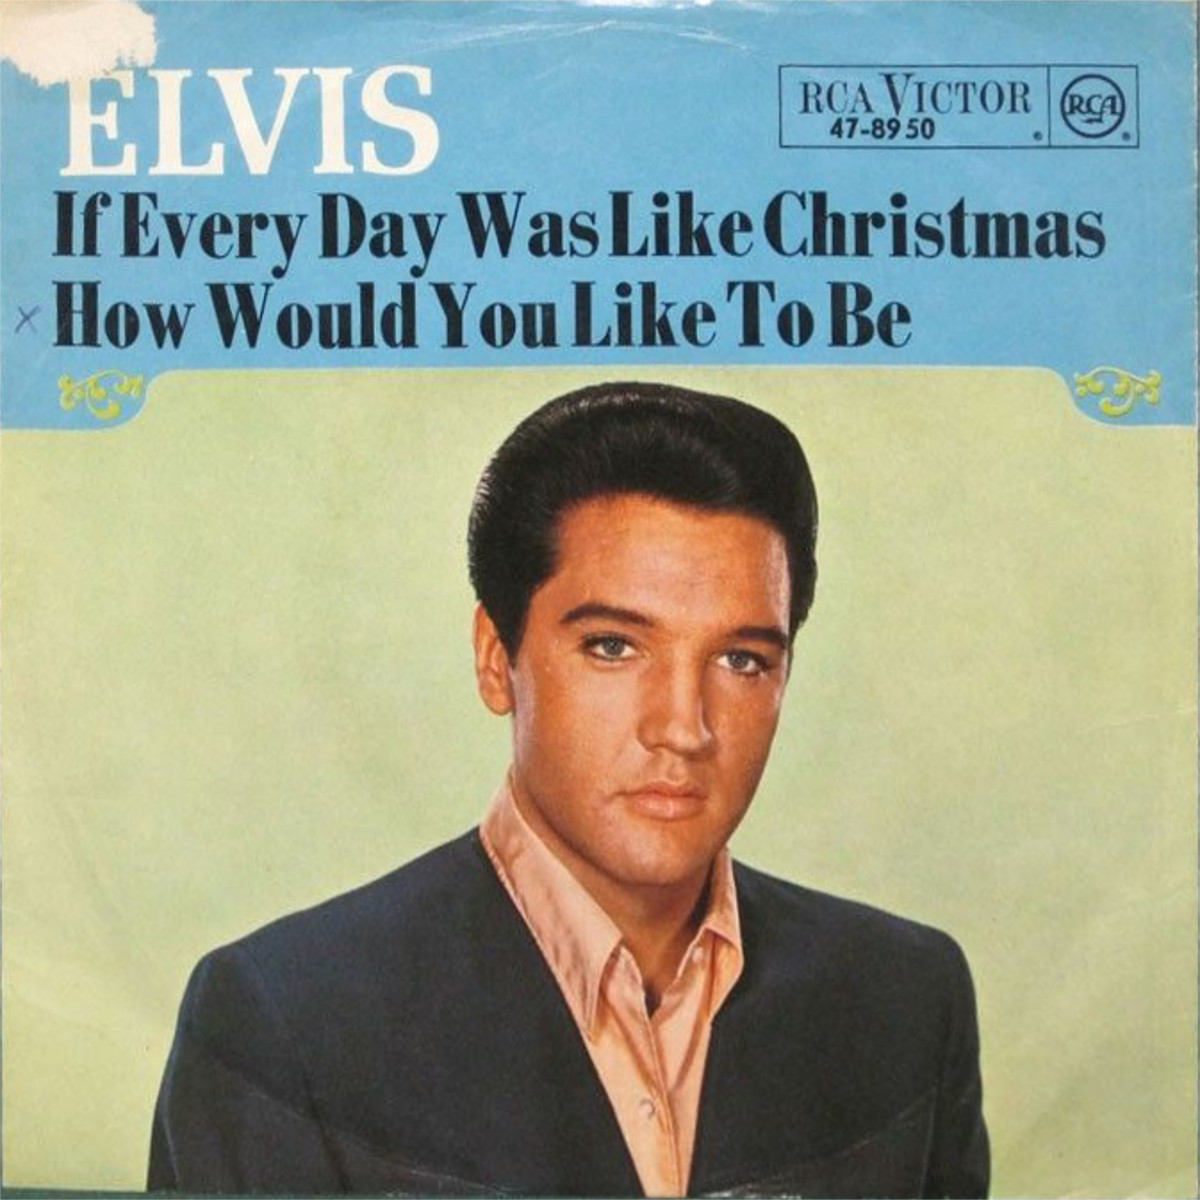 If Everyday Was Like Christmas / How Would You Like To Be 47-8950bcwlld